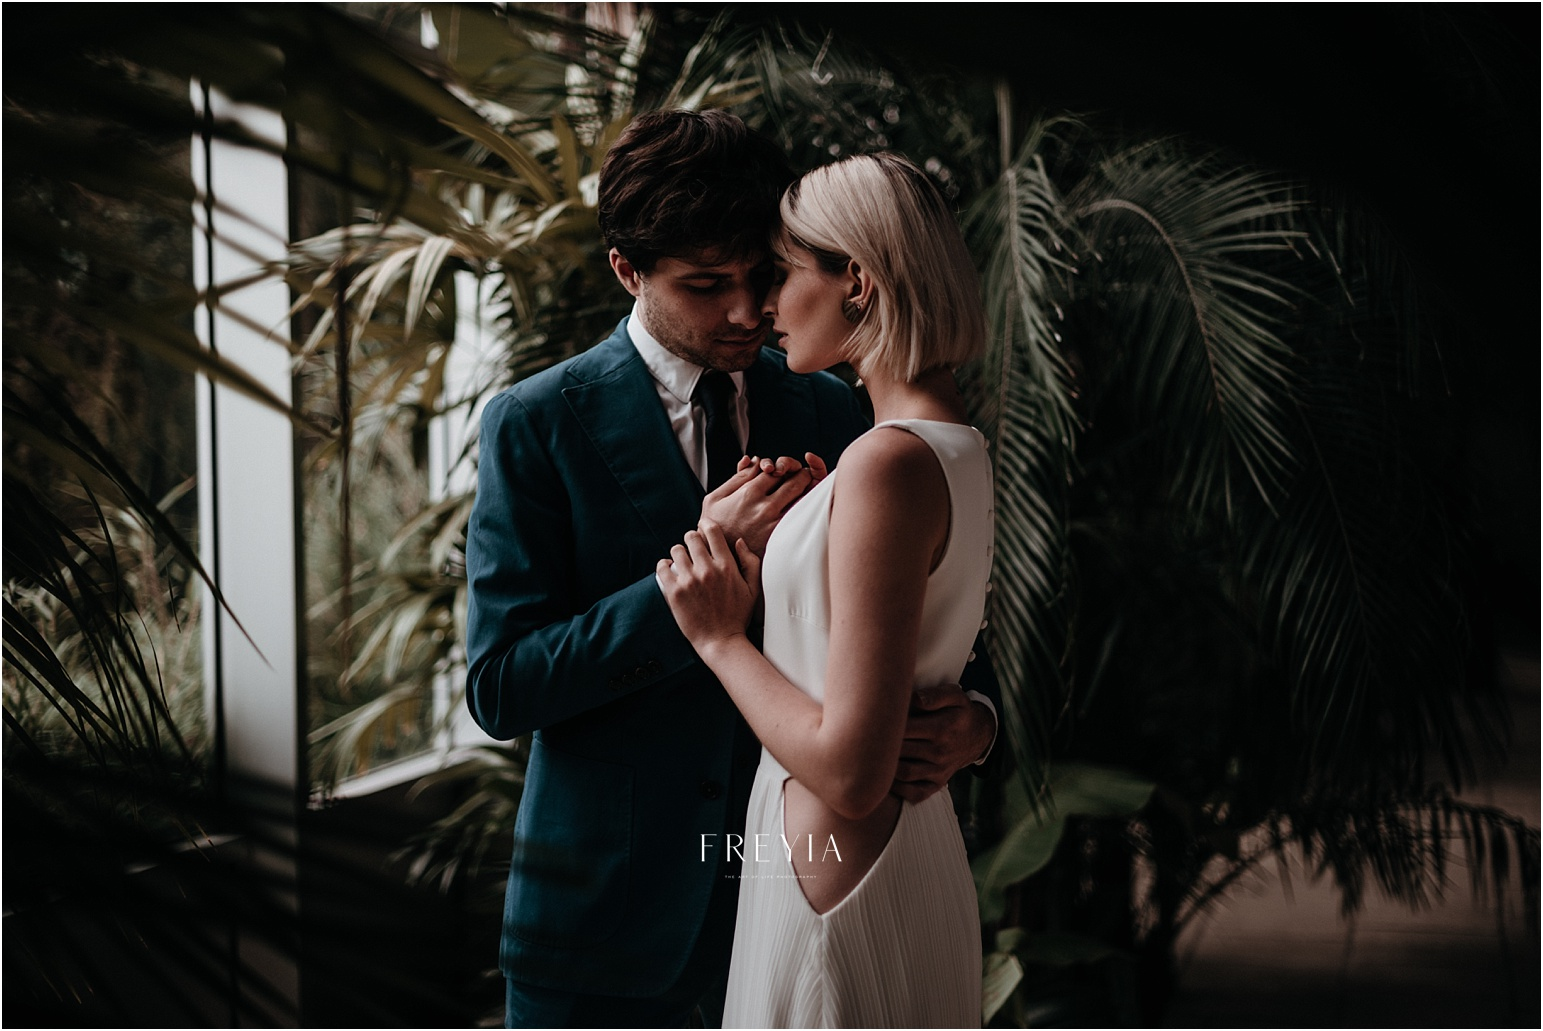 E + F inspiration vegetal tropical minimaliste espace nobuyoshi |  mariage reportage alternatif moody intime vintage naturel boho boheme |  PHOTOGRAPHE mariage PARIS france destination  | FREYIA photography-24.jpg